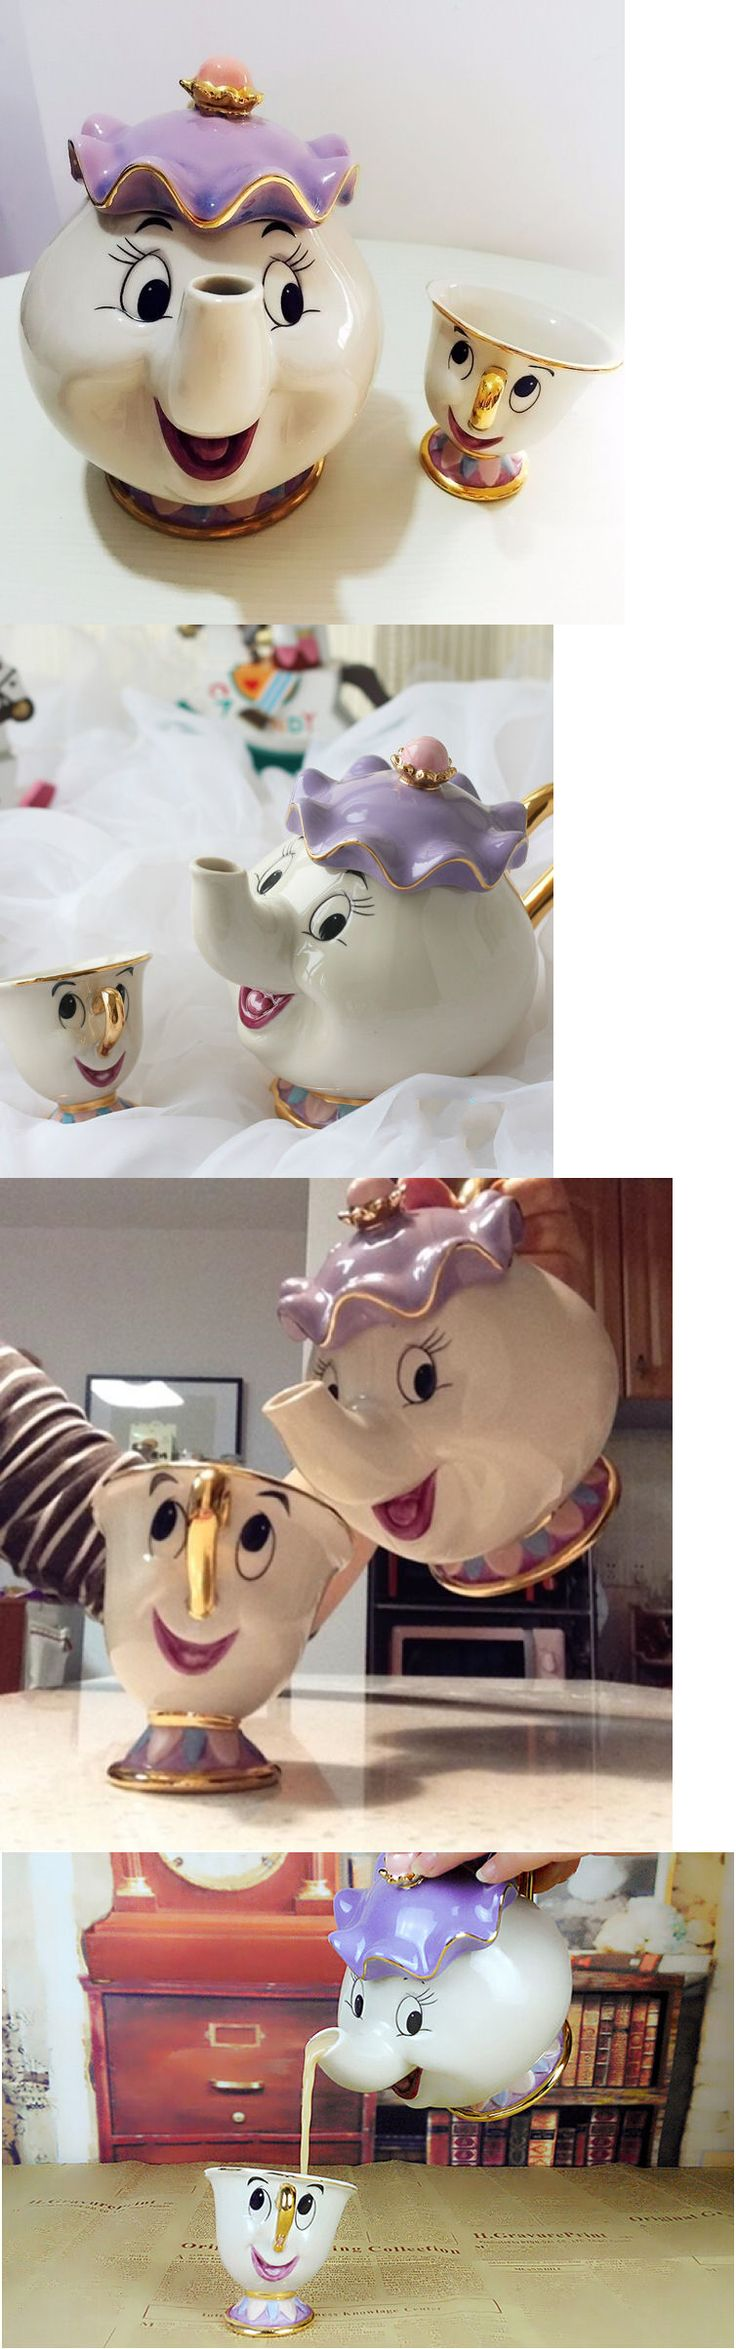 Beauty and the Beast 44033: Cartoon Beauty And The Beast Teapot Mug Mrs Potts Chip Tea Pot Cup Set Xmas Gift -> BUY IT NOW ONLY: $49.99 on eBay!